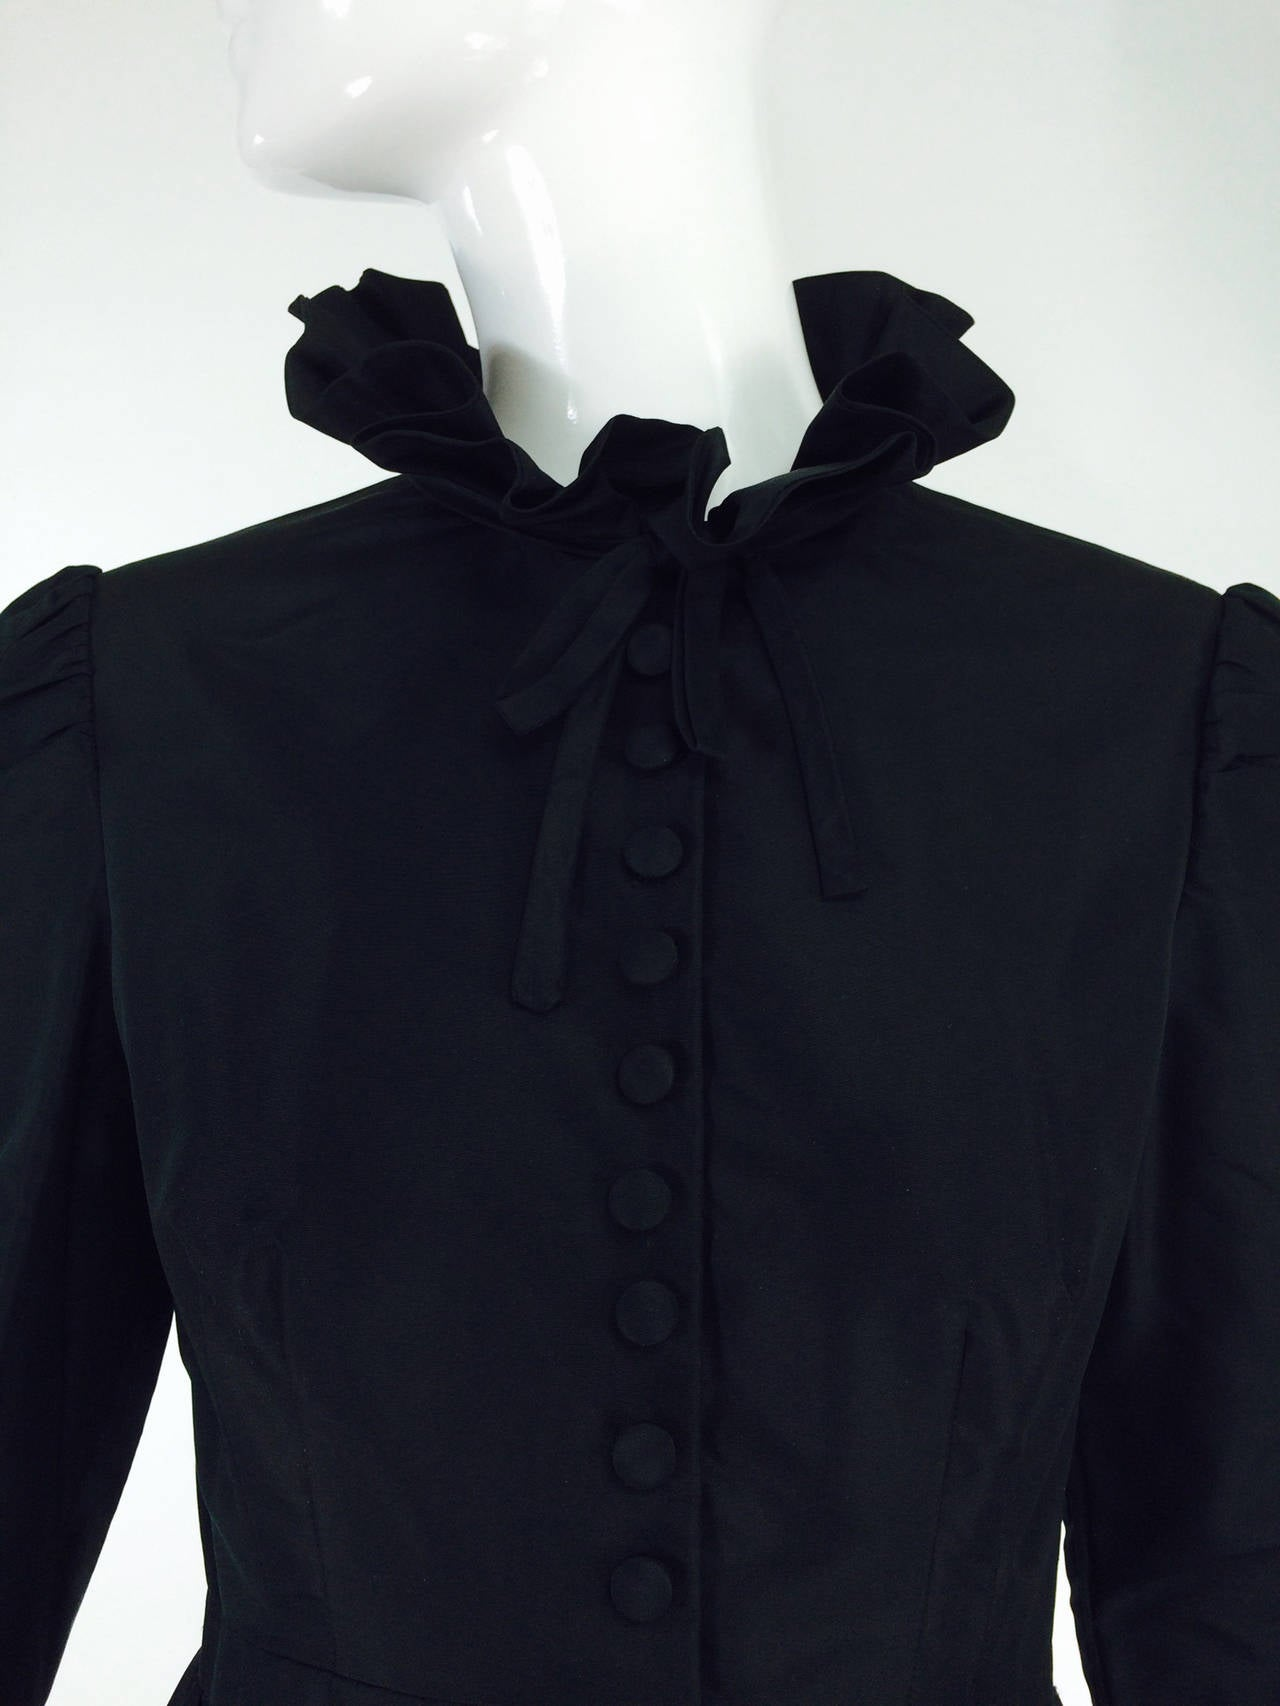 Shannon Rodgers for Jerry Silverman black Victorian style gown 1960s 2